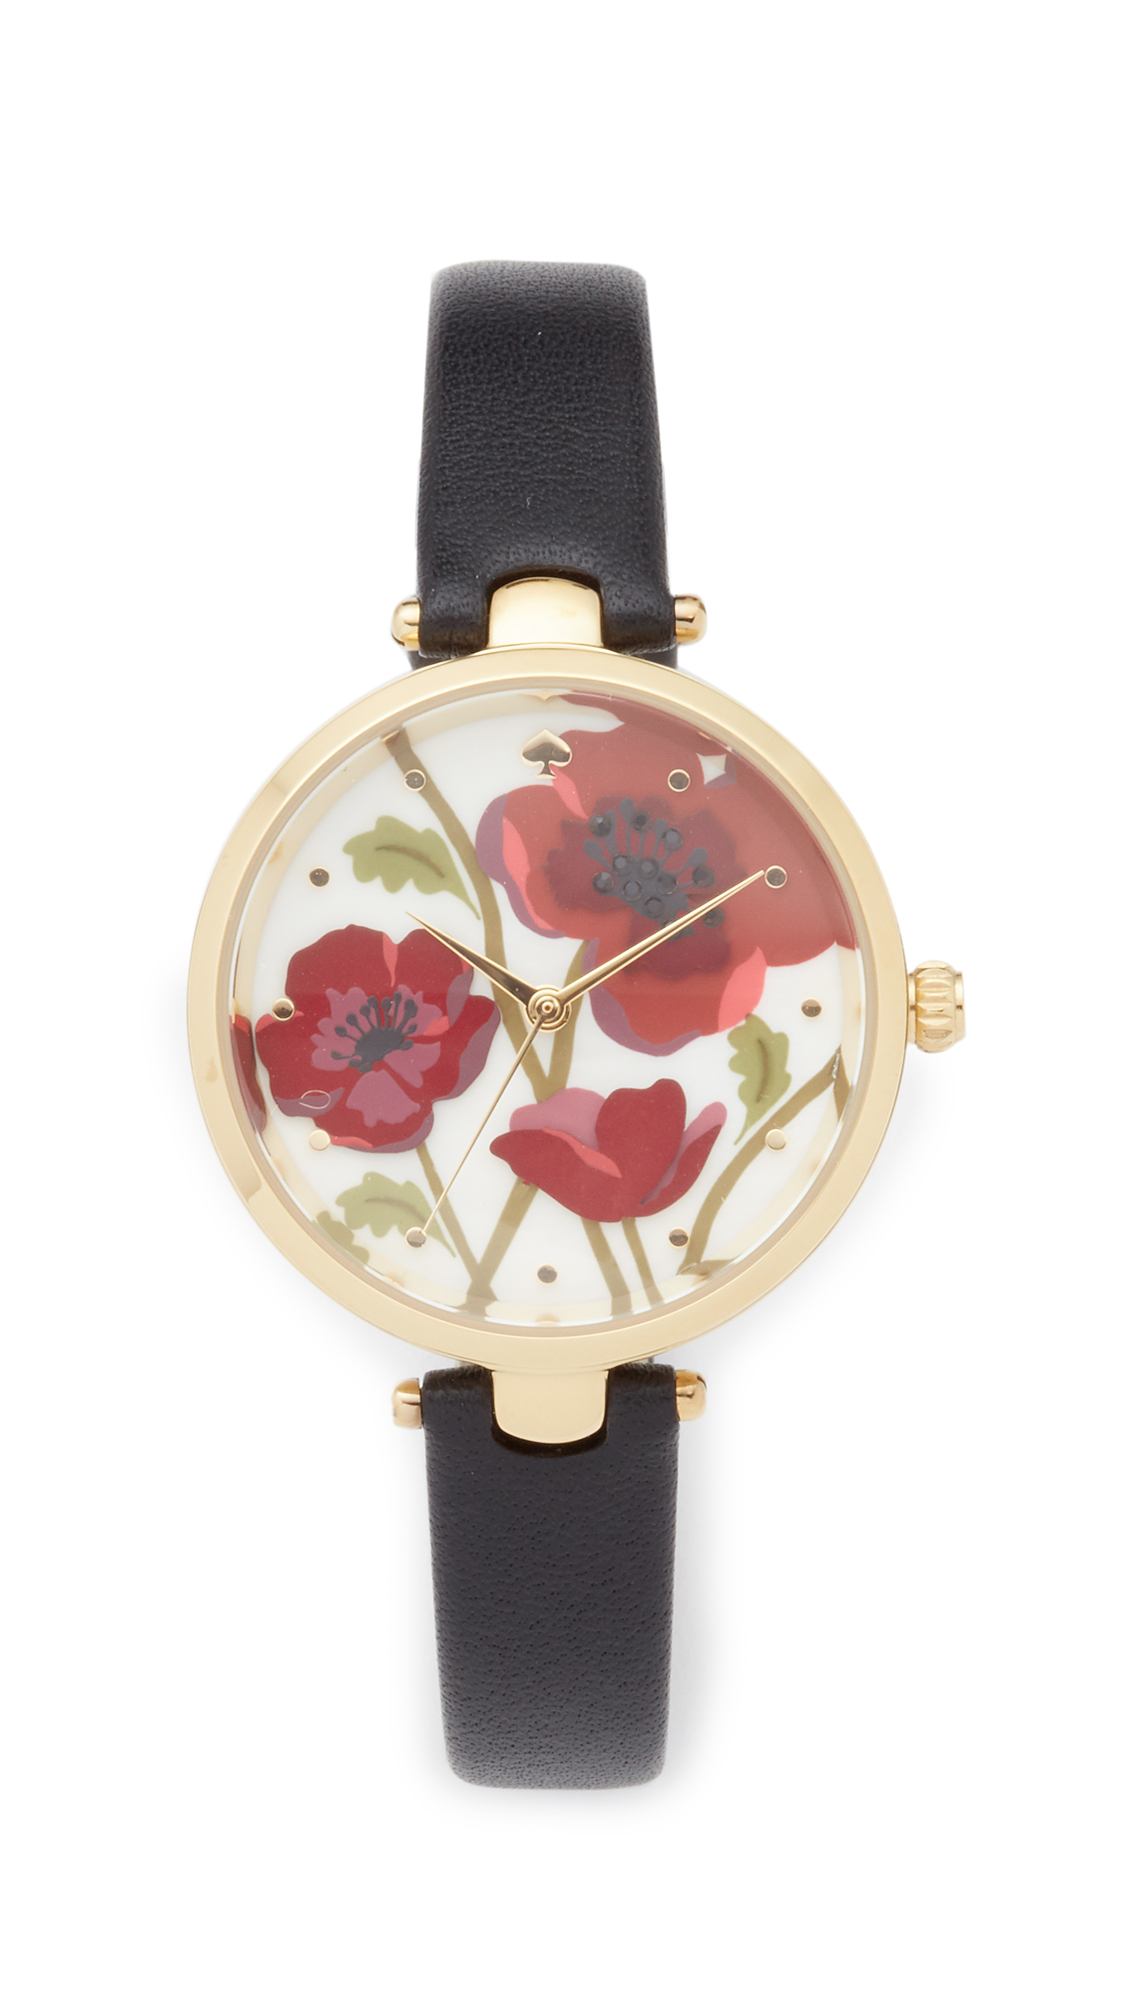 Kate Spade New York Novelty Leather Watch, 34mm - Black/Multi/Gold